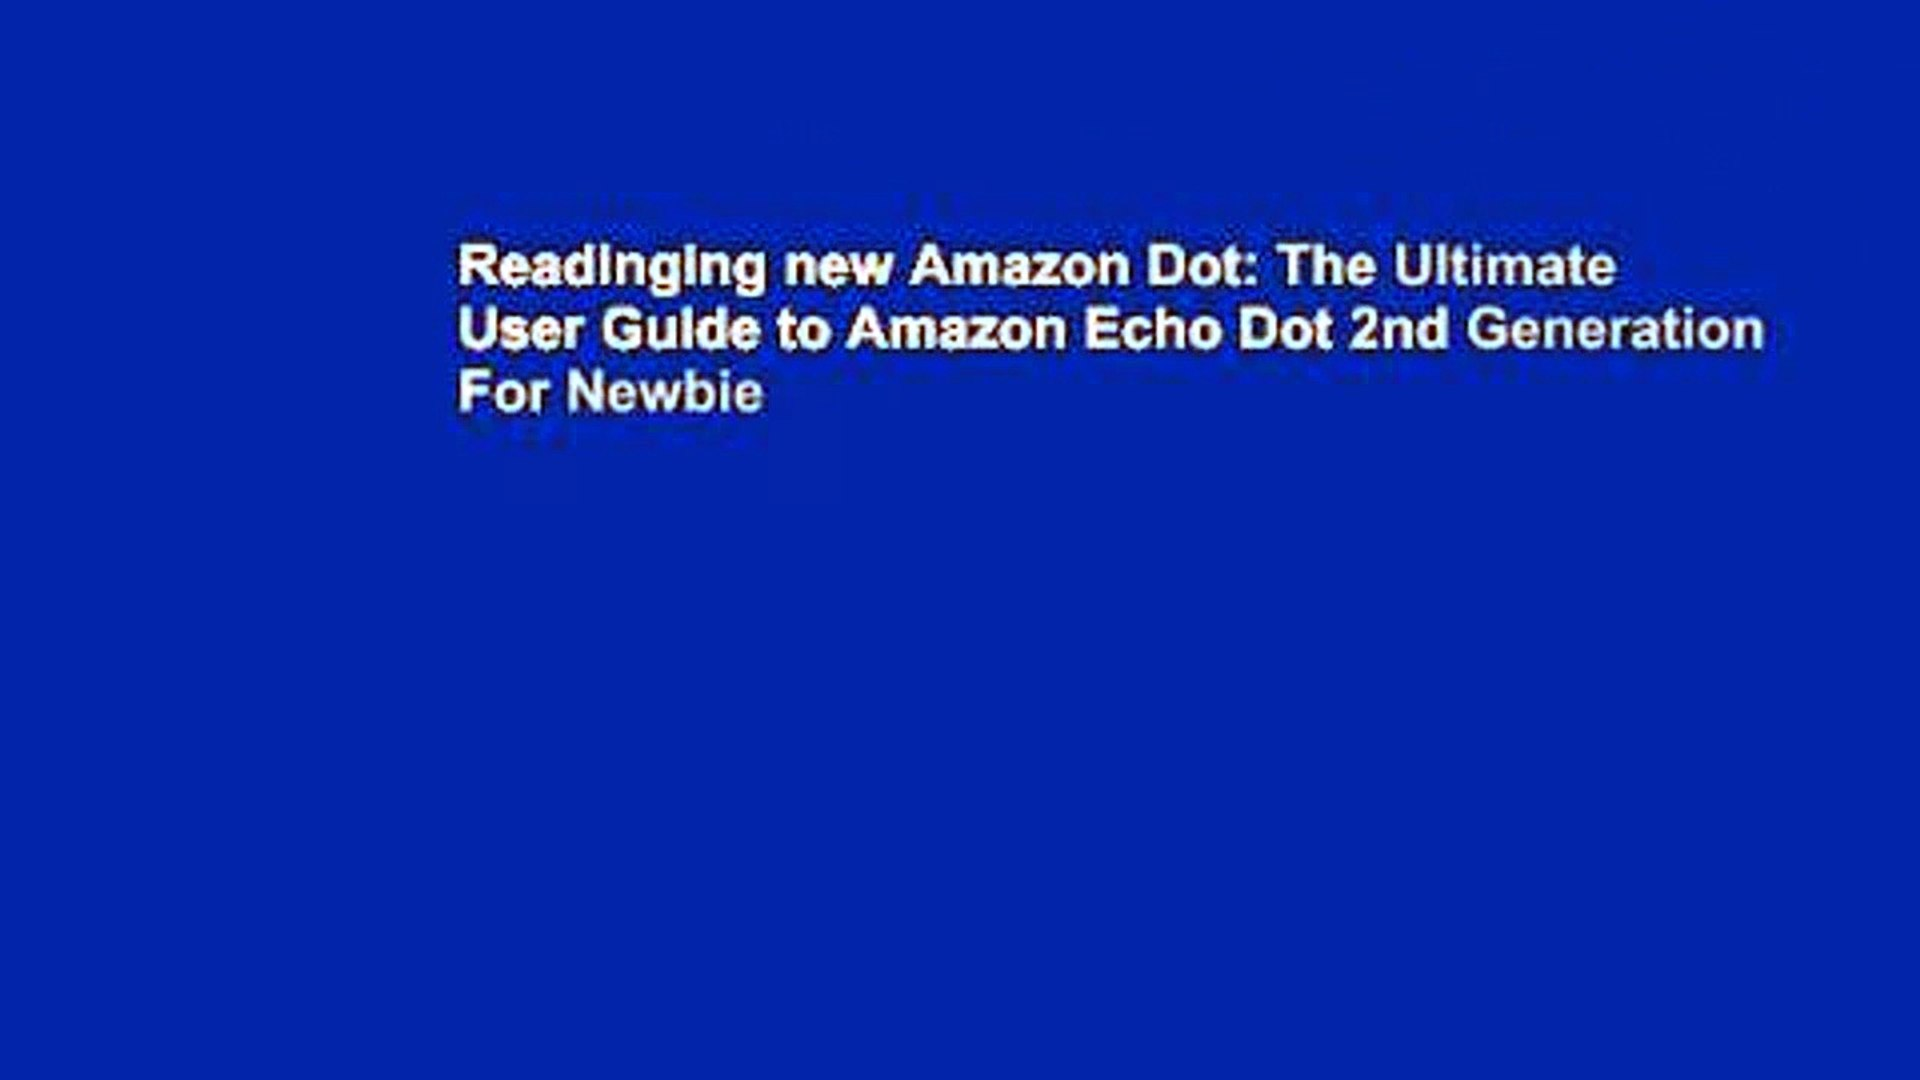 Readinging new Amazon Dot: The Ultimate User Guide to Amazon Echo Dot 2nd Generation For Newbie